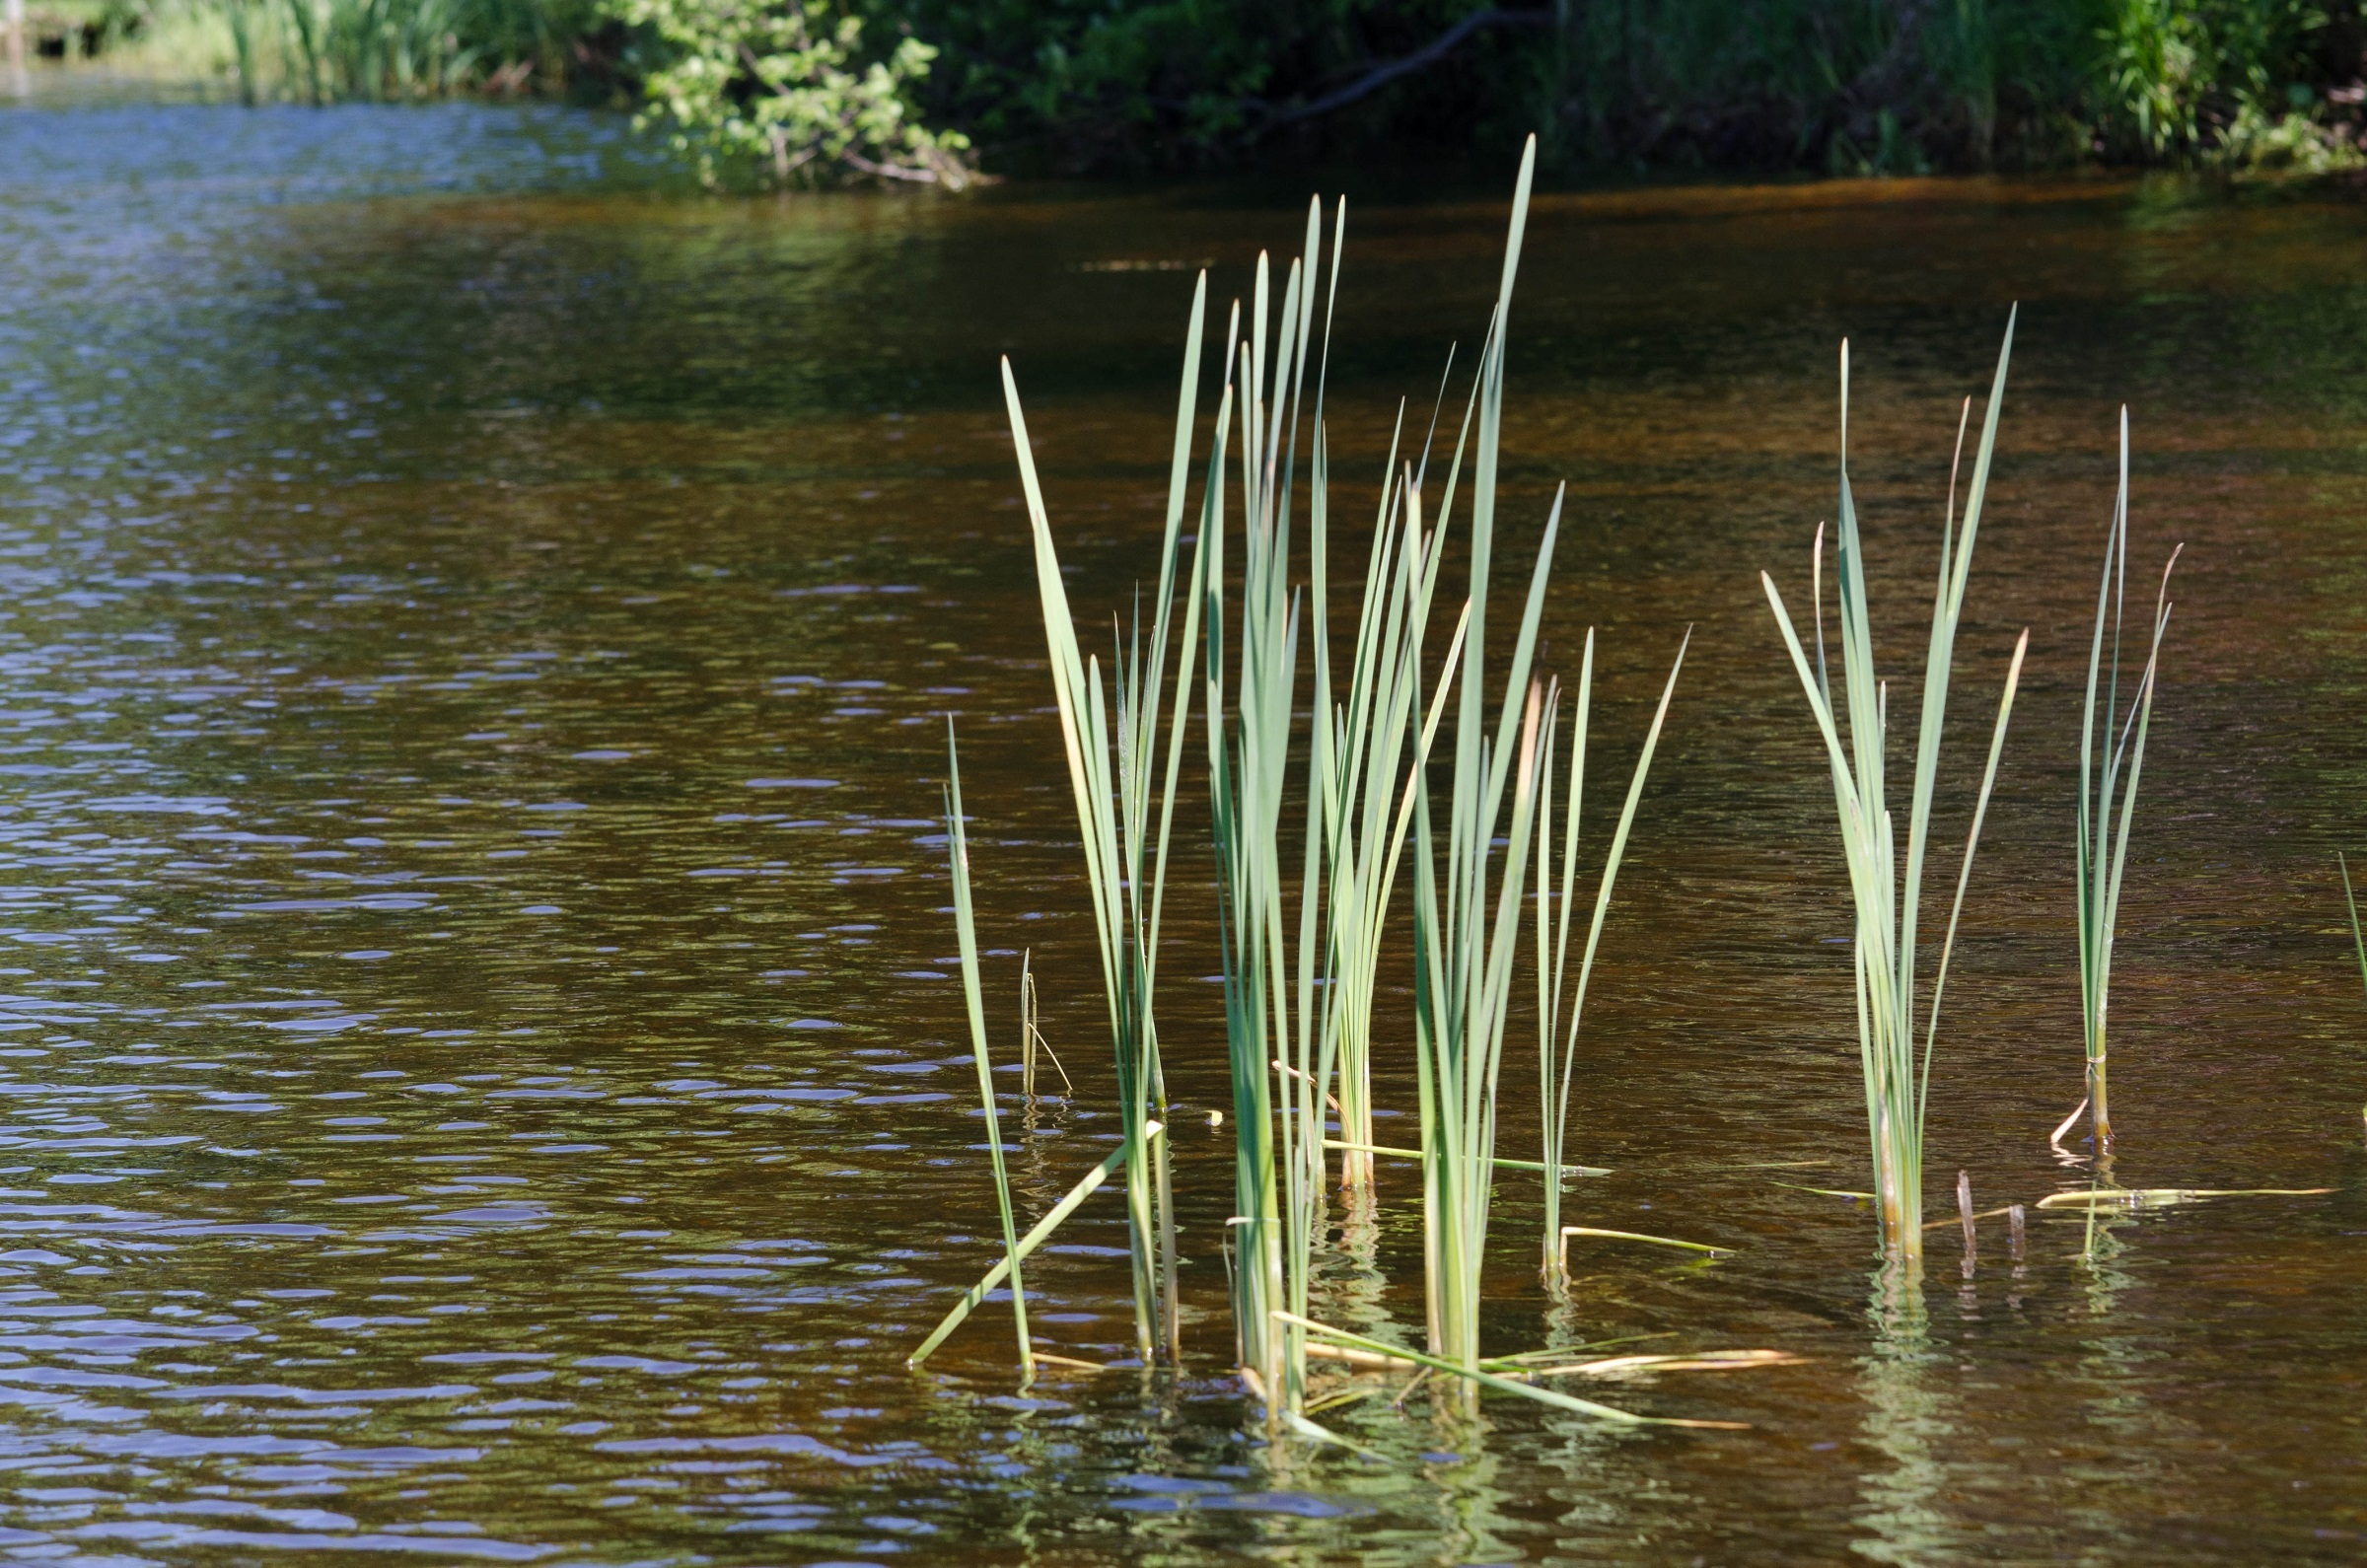 Reeds in the River, Flow, Lake, Nature, Reed, HQ Photo